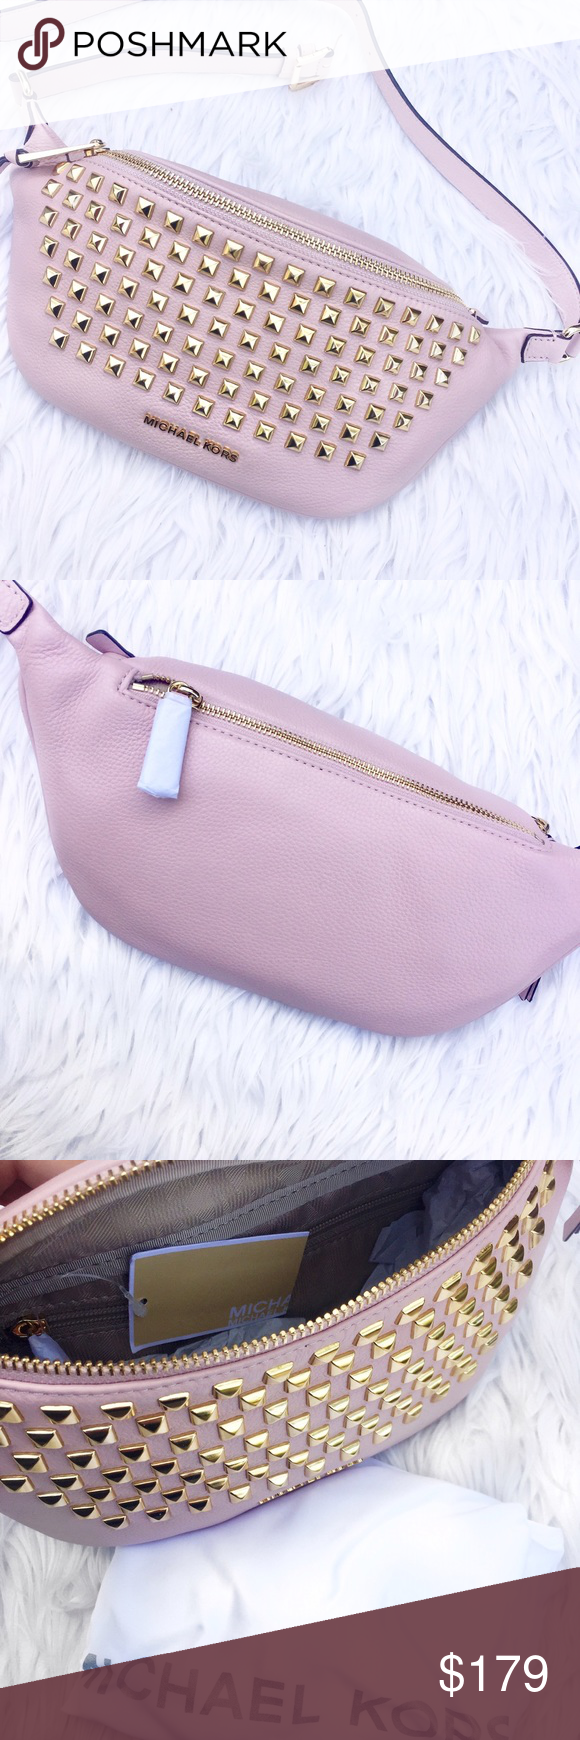 e0dbc38f746fde Michael Kors • Studded Belt Bag Ballerina pink studded fanny pack, dust bag  included! Perfect for a day of shopping. 16